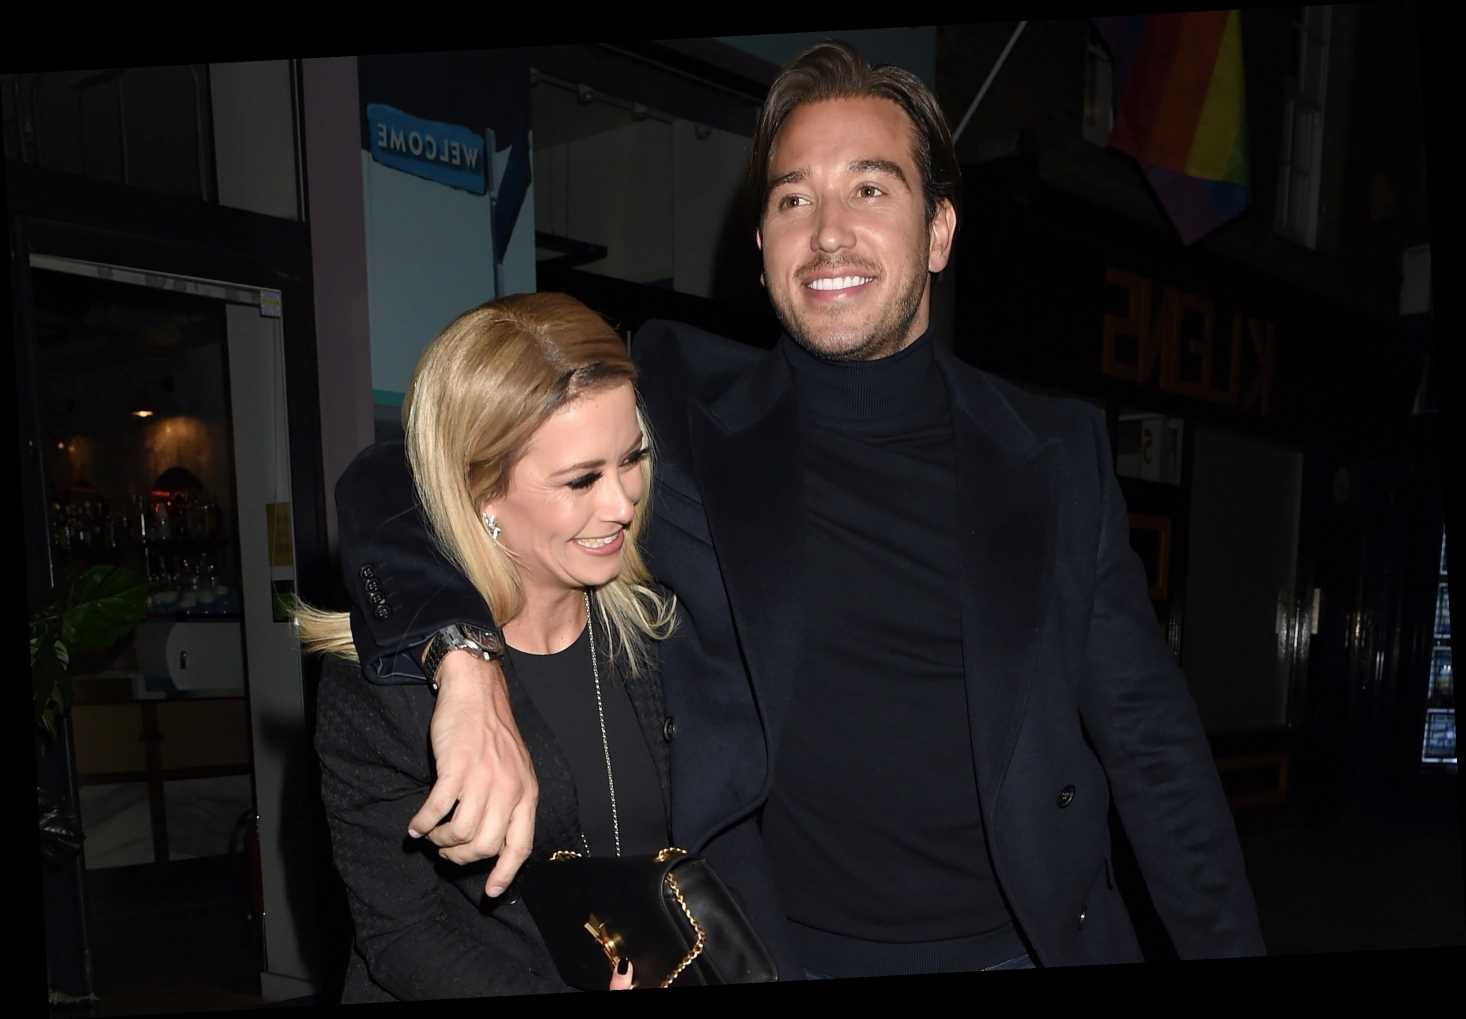 James Lock and Olivia Bentley look cosy as they leave Celebs Go Dating dinner together – The Sun